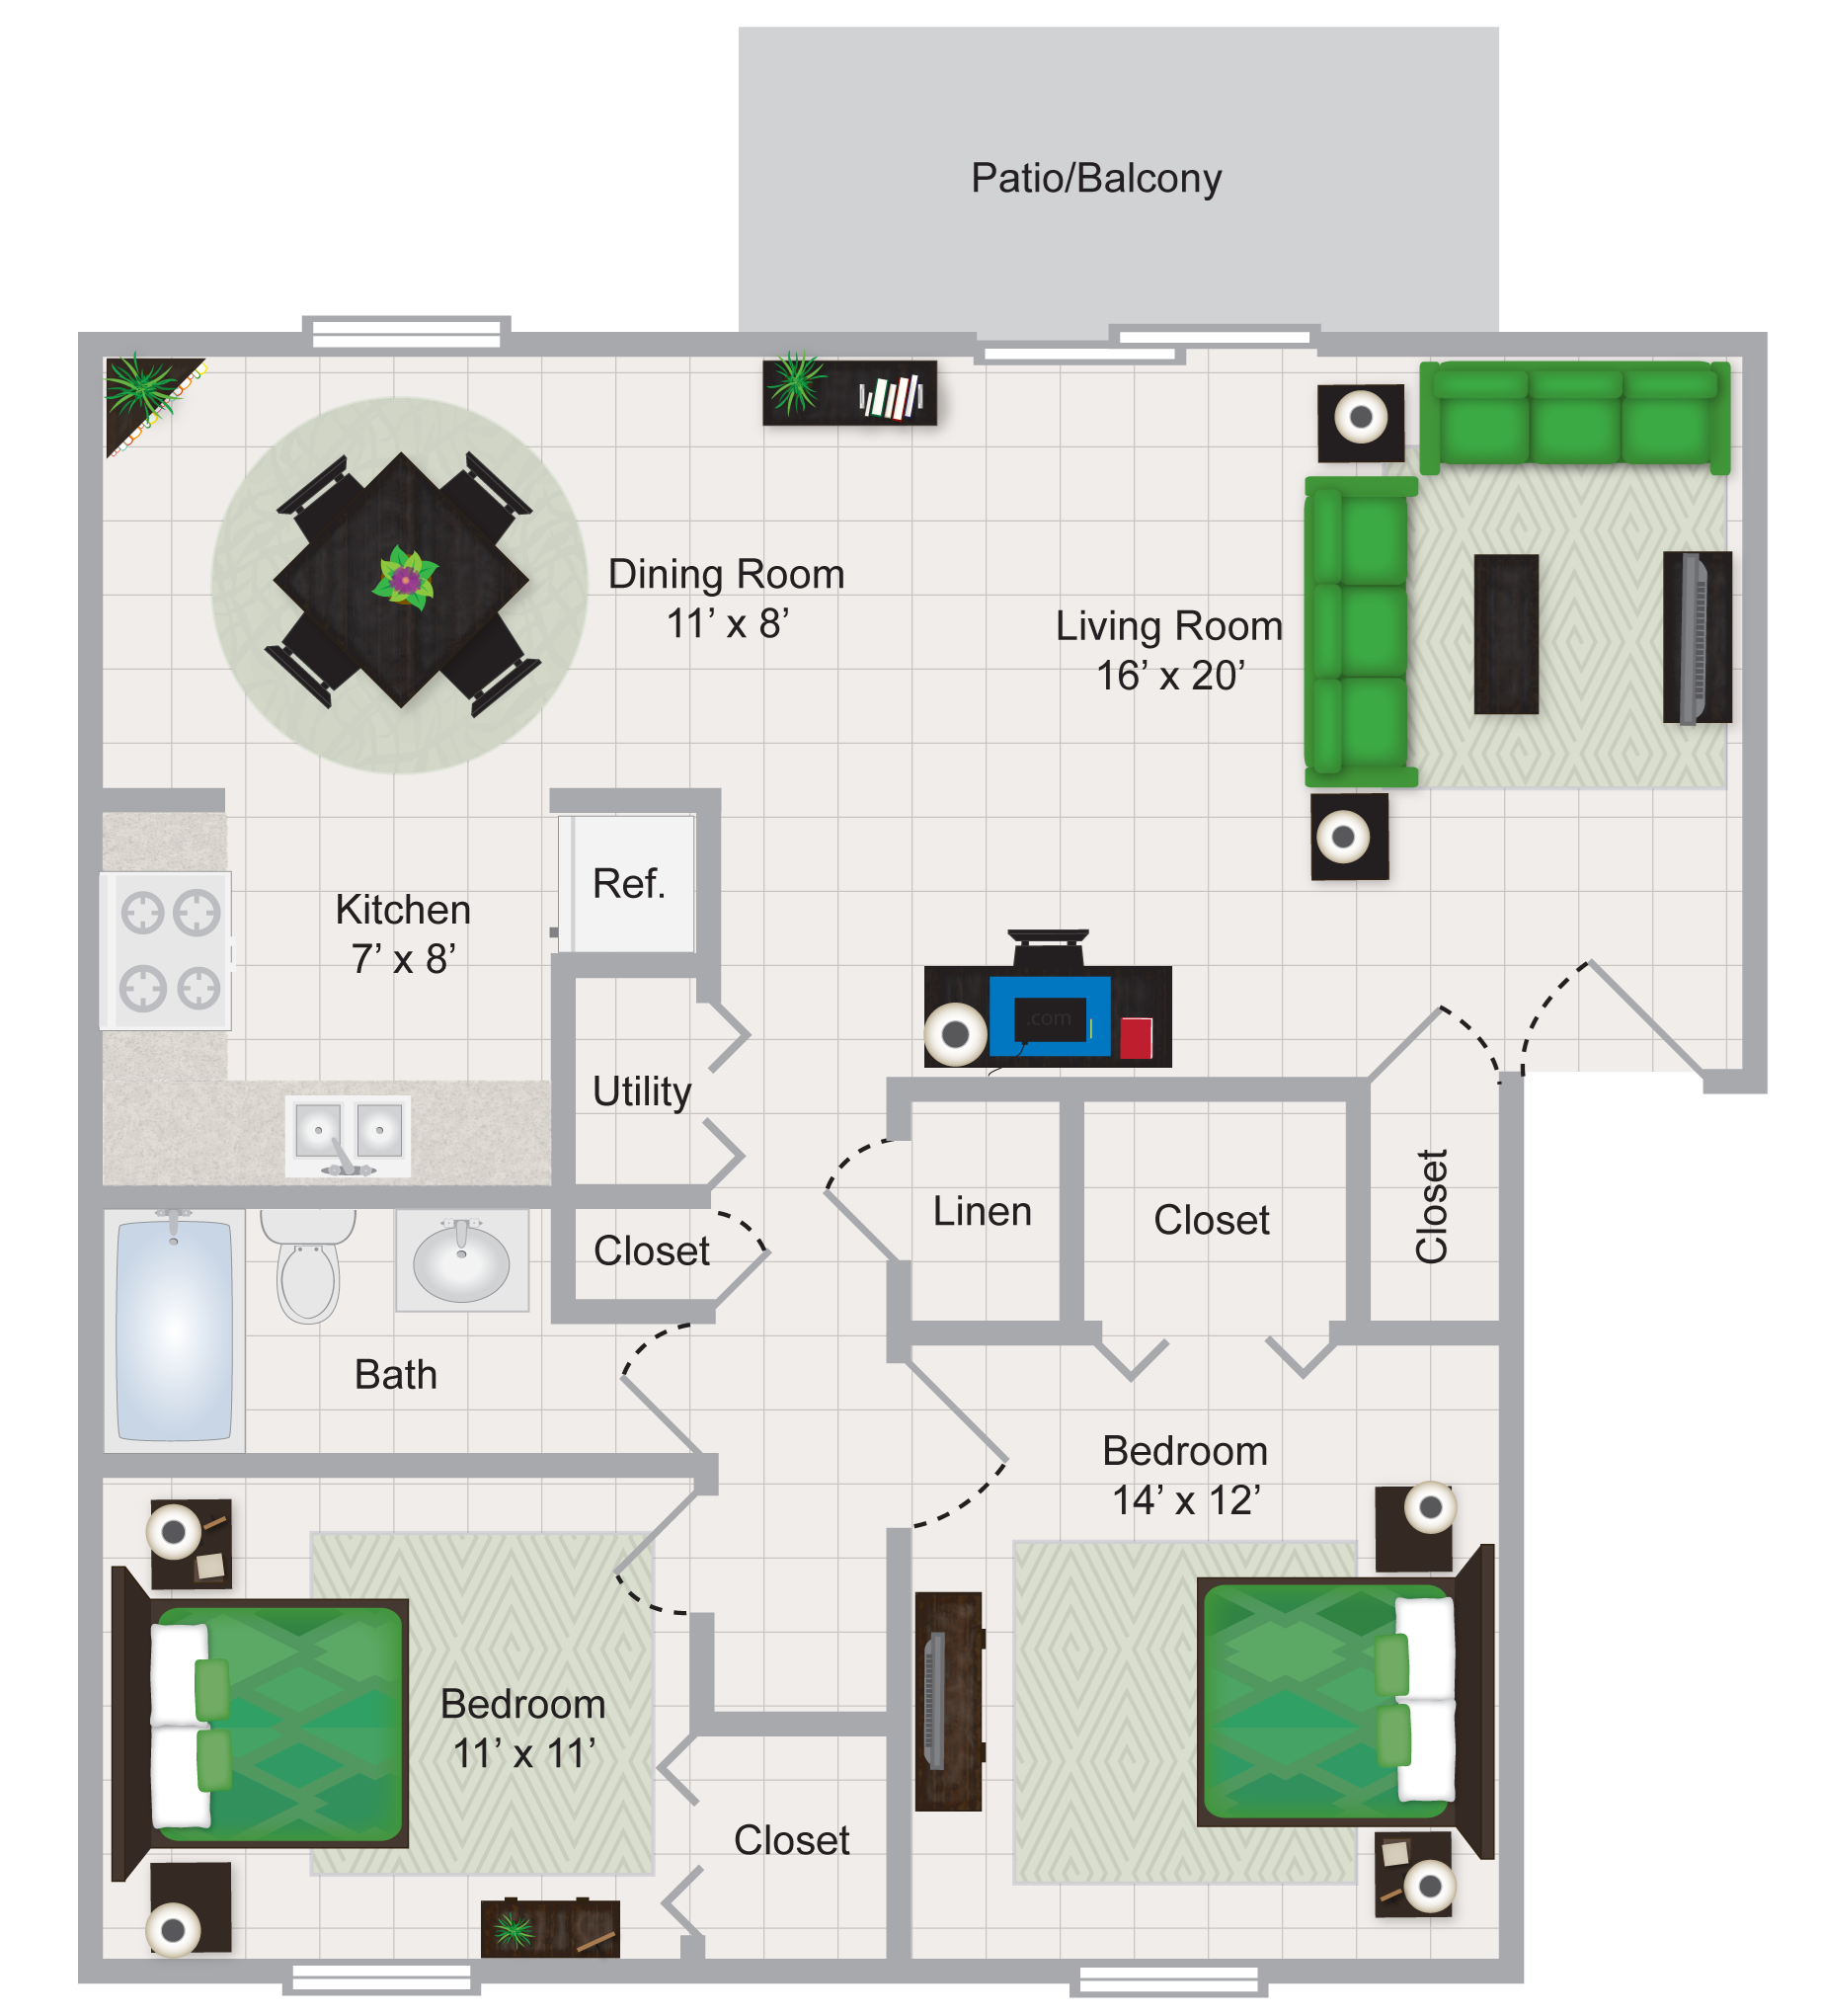 Floor Plans Of Carriage House Muskegon In Muskegon, MI